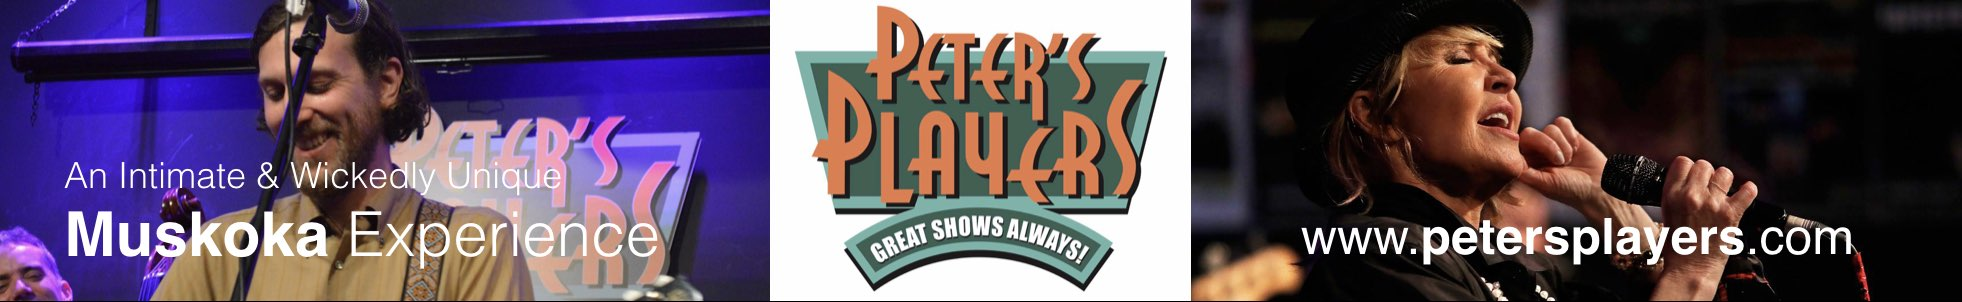 Peters Players 02